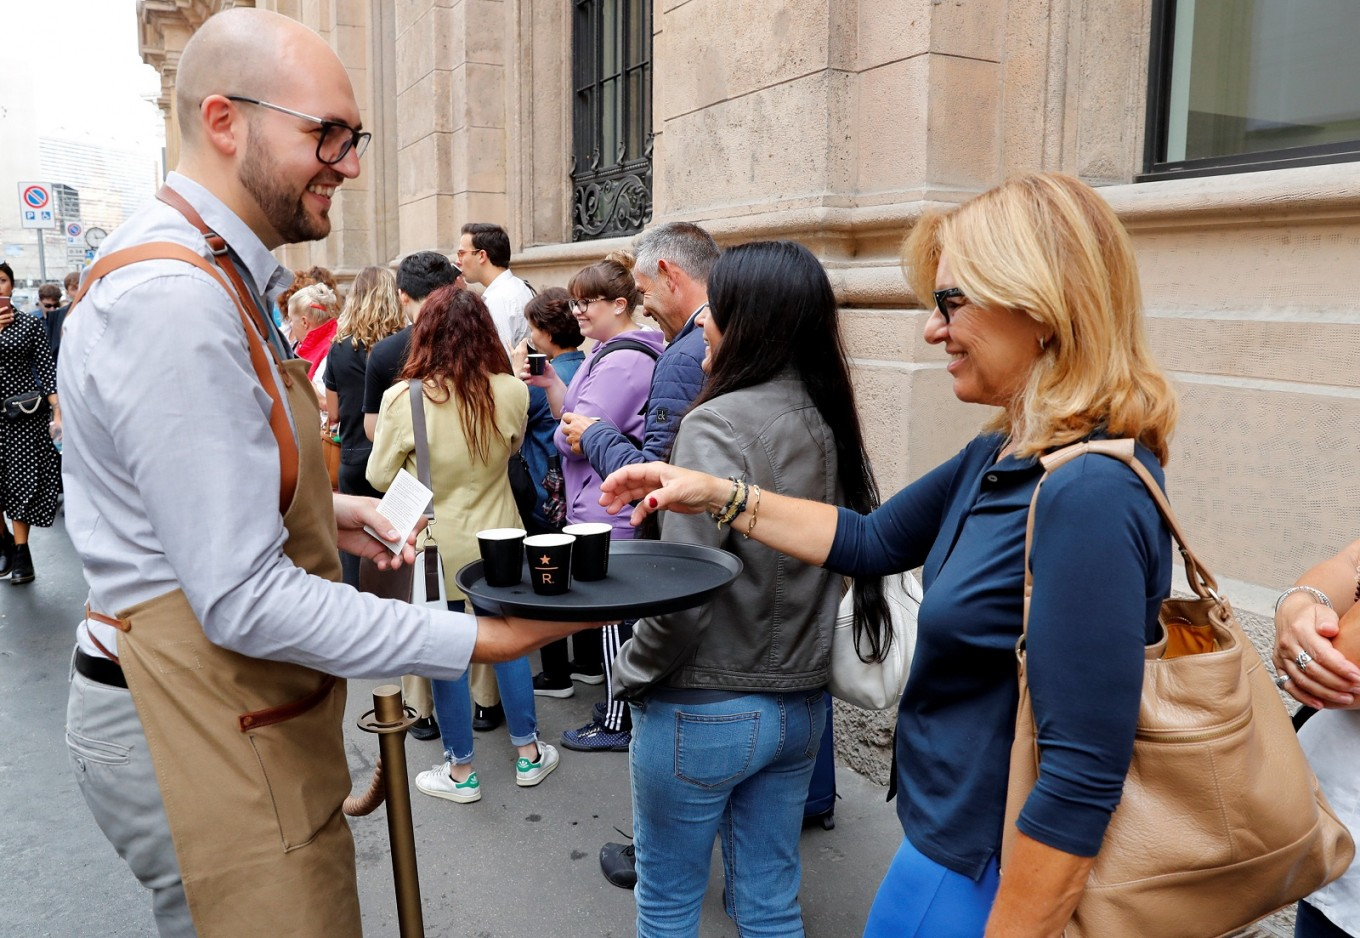 Starbucks pulls in crowds at first Italian cafe